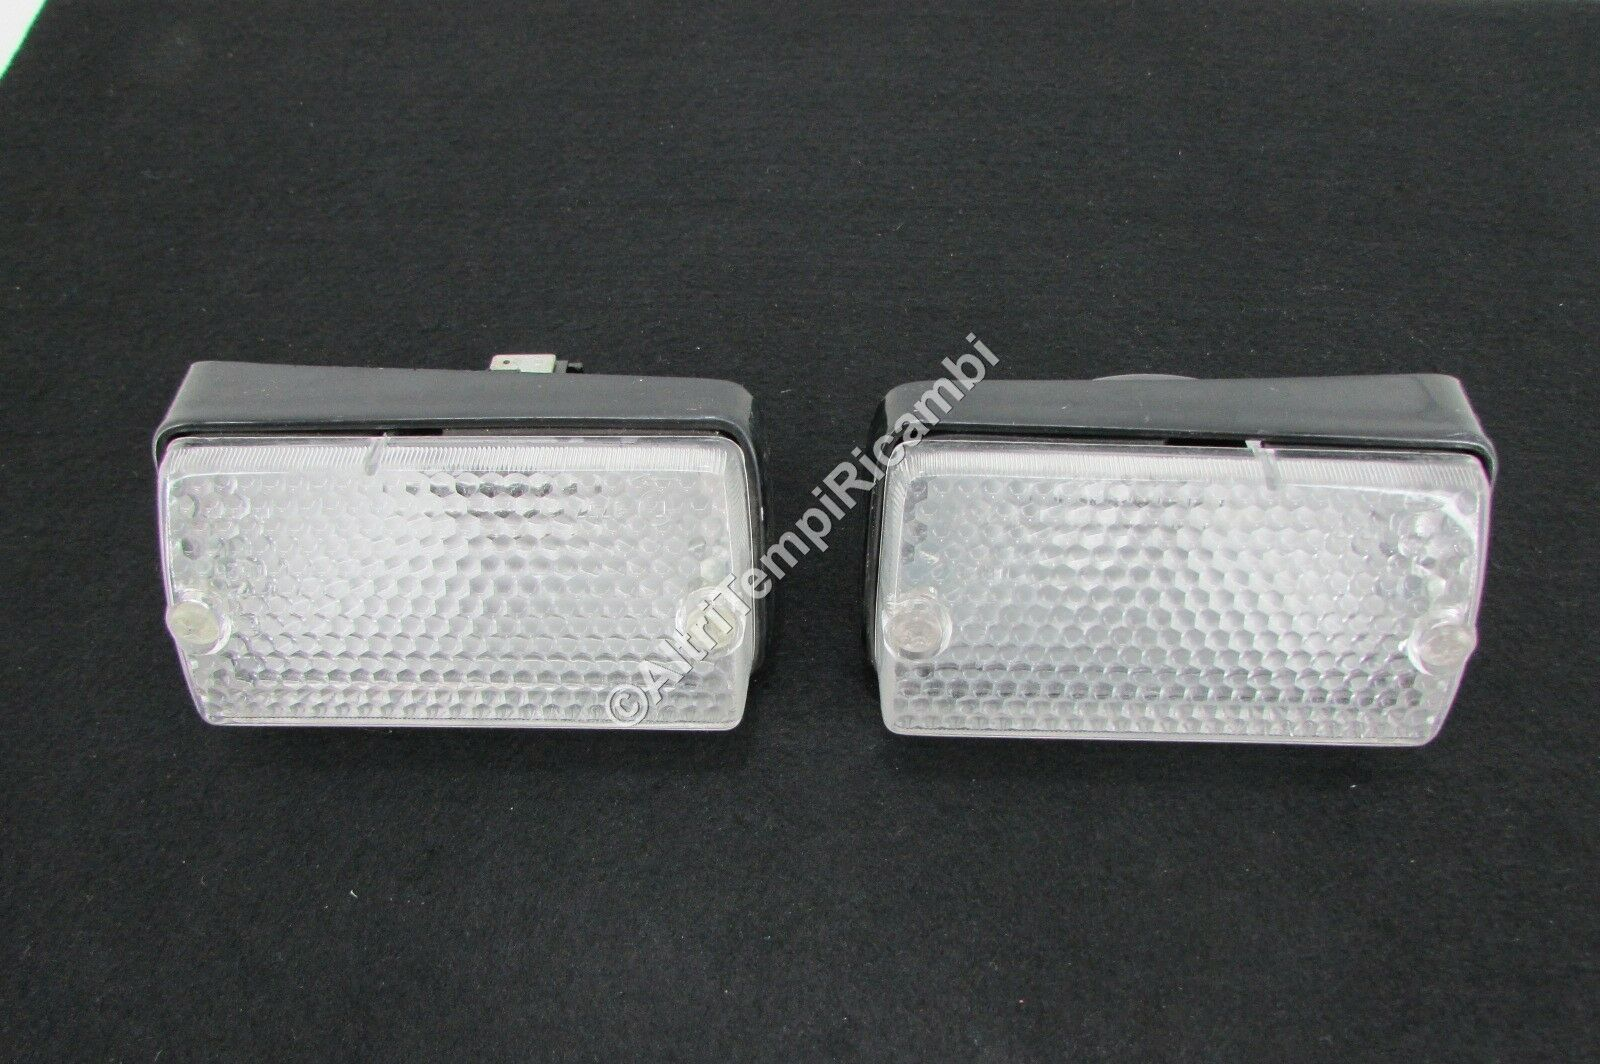 LIGHT FRONT L AUTOBIANCHI A112 ABARTH 6^ E 7^ SERIE 16309 INDICATOR TURN